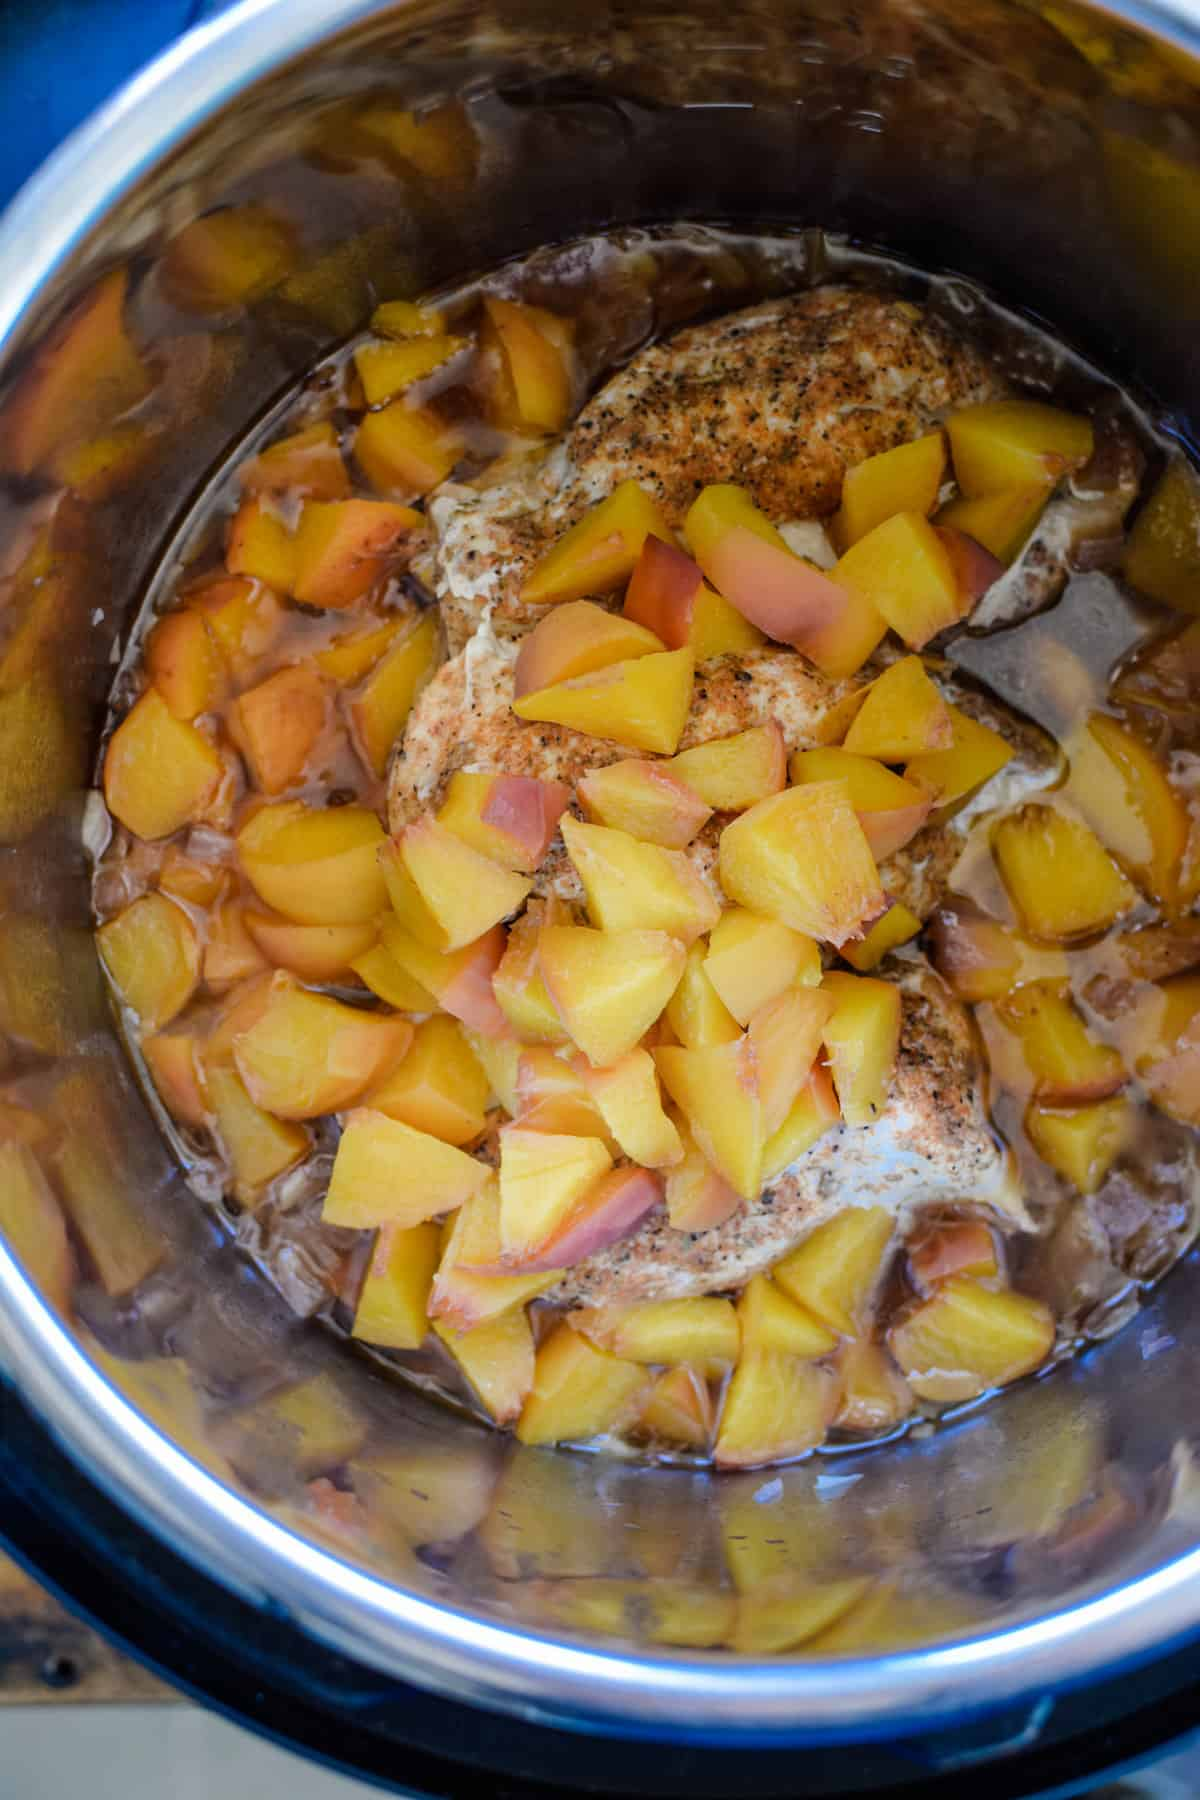 Peaches and chicken in a metal pot with liquid.